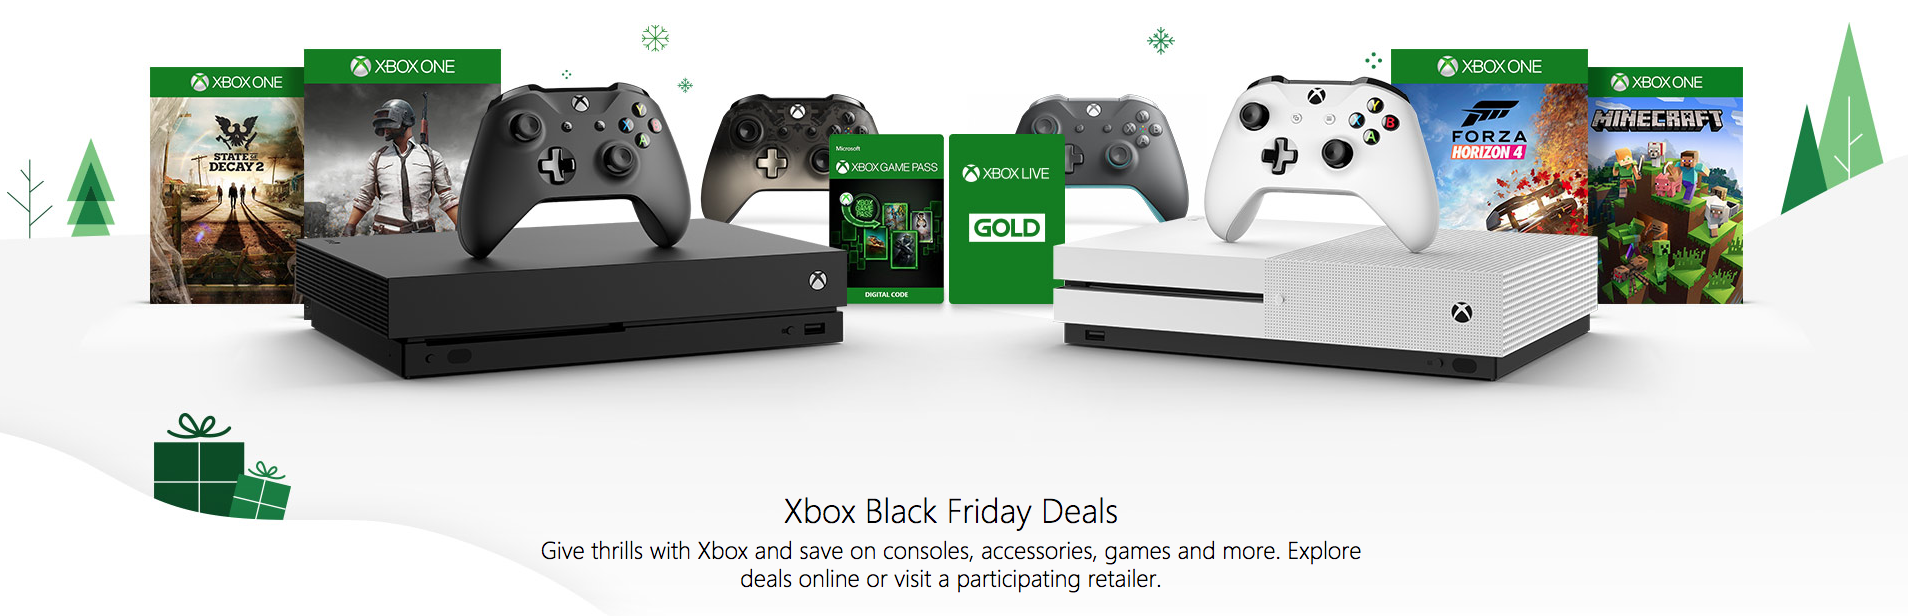 Xbox Live Gold Black Friday Game Sale starts now! Up to 67